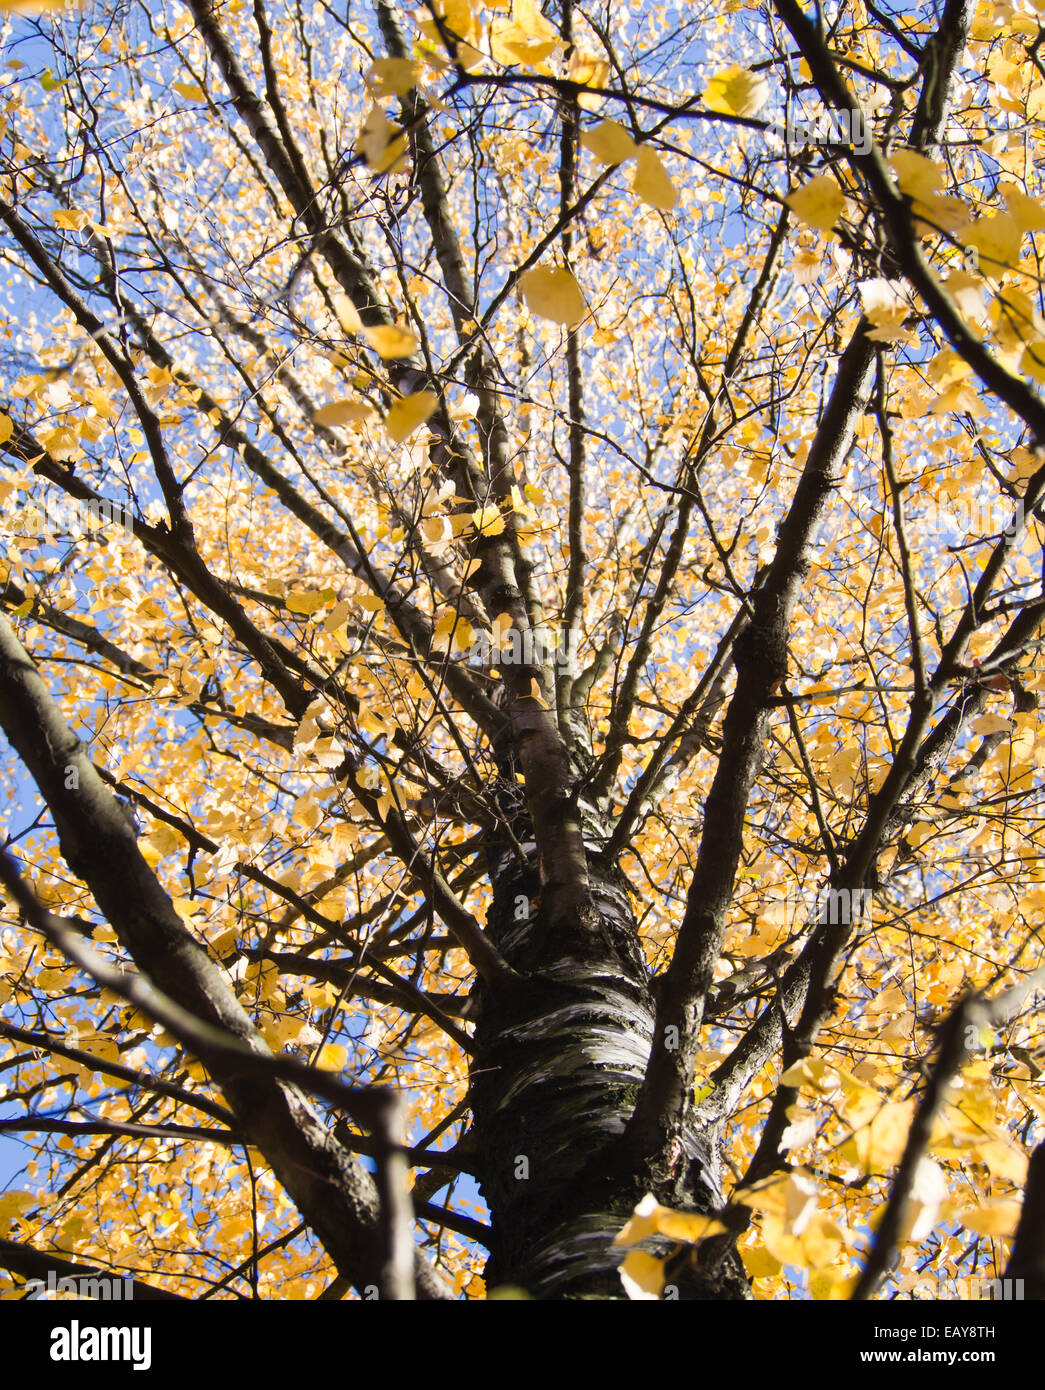 Yellow birch tree, leaves against a blue autumn sky, autumnal scenery from Oslo Norway - Stock Image